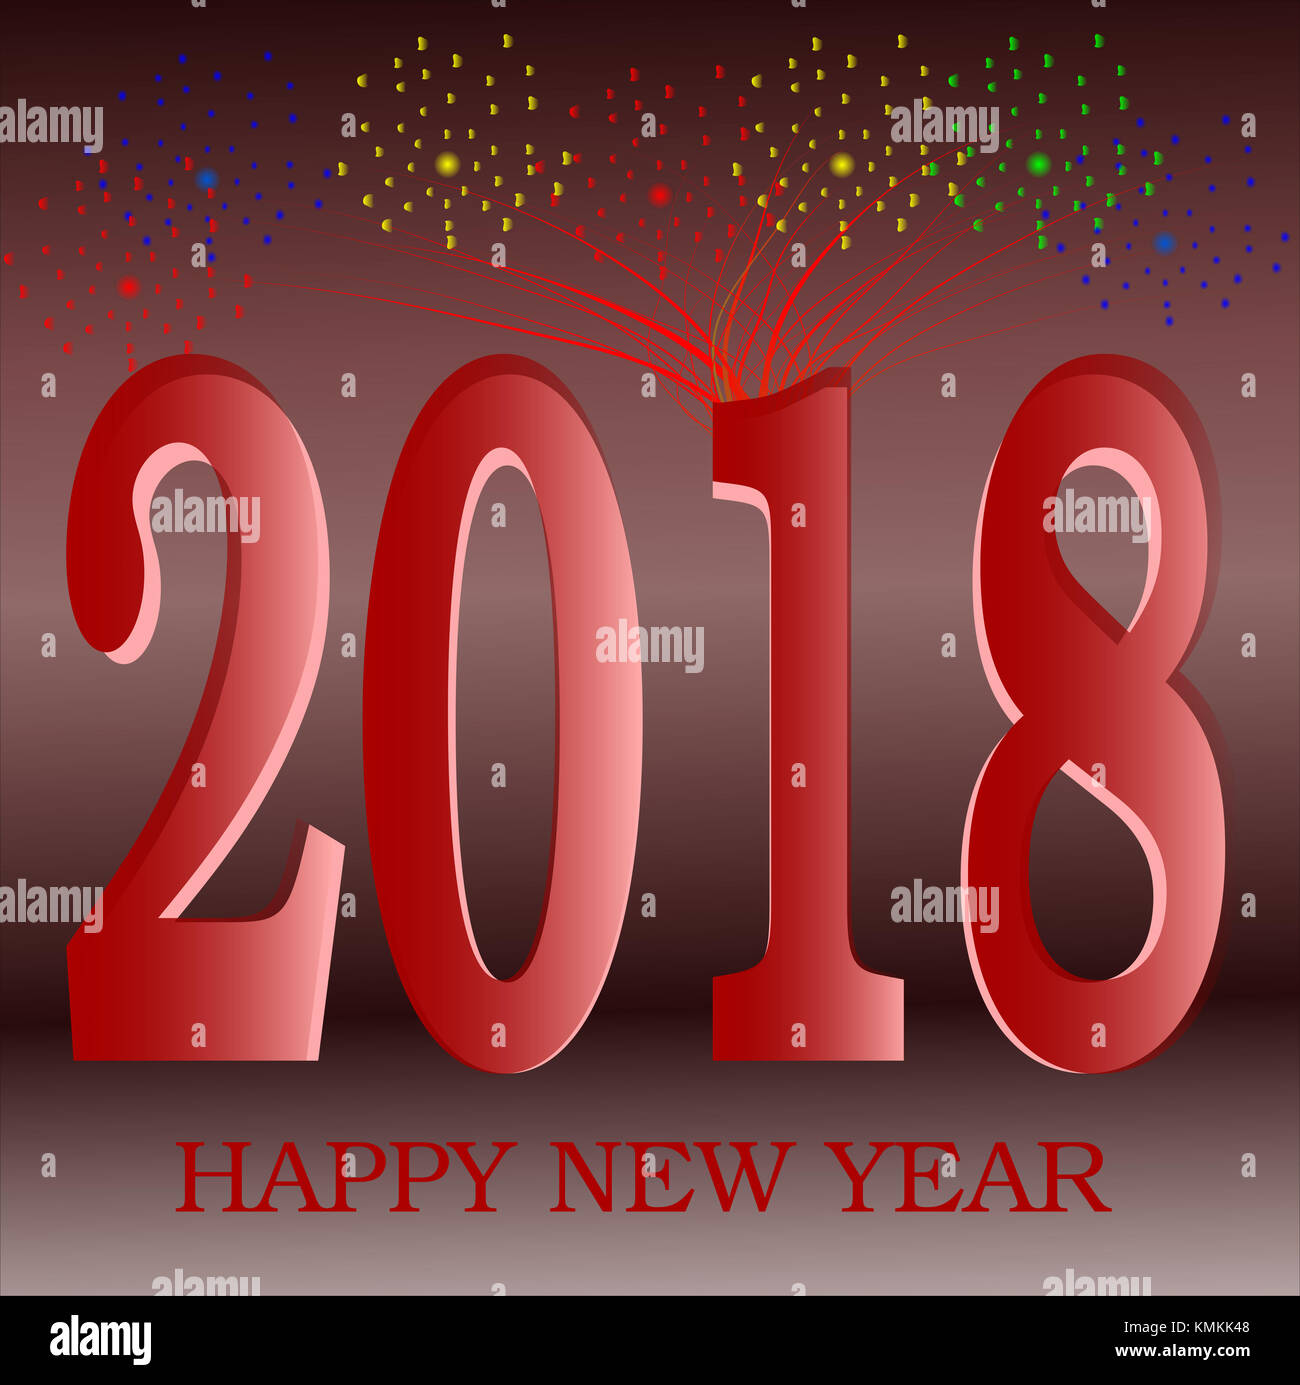 happy new year 2018 greeting red with golden background illustration with gradients 3d illusion space